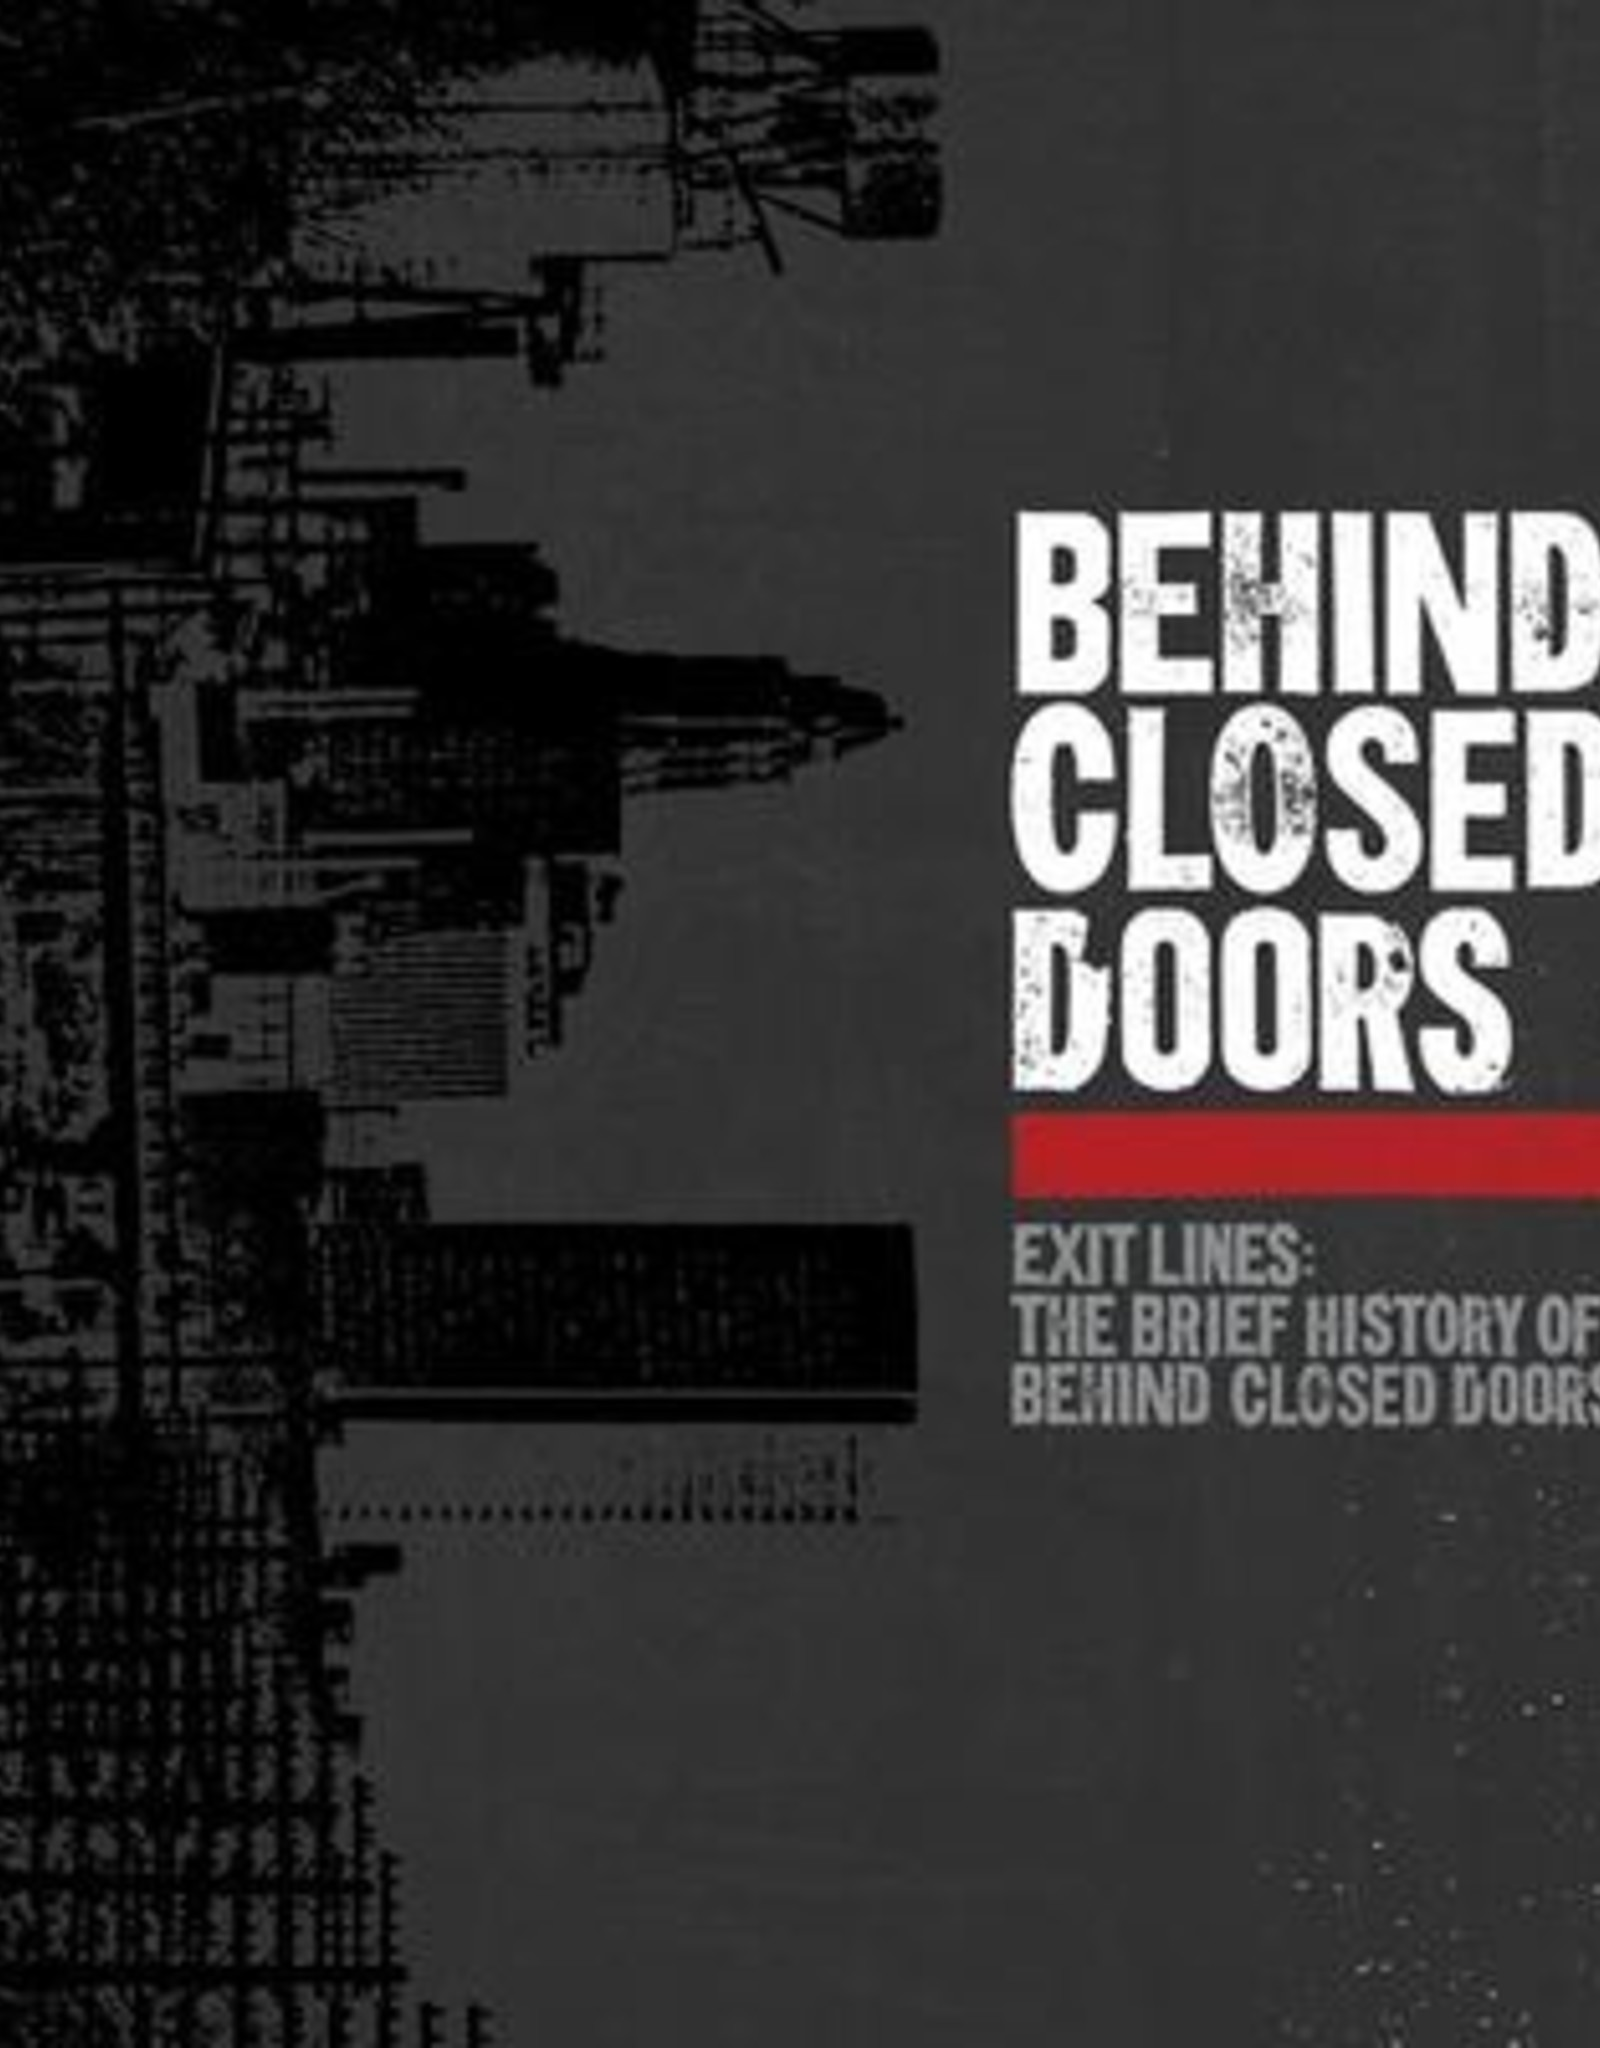 Behind Closed Doors - Exit Lines: The Brief History Of Behind Closed Doors (Limited Edition Colored Vinyl)